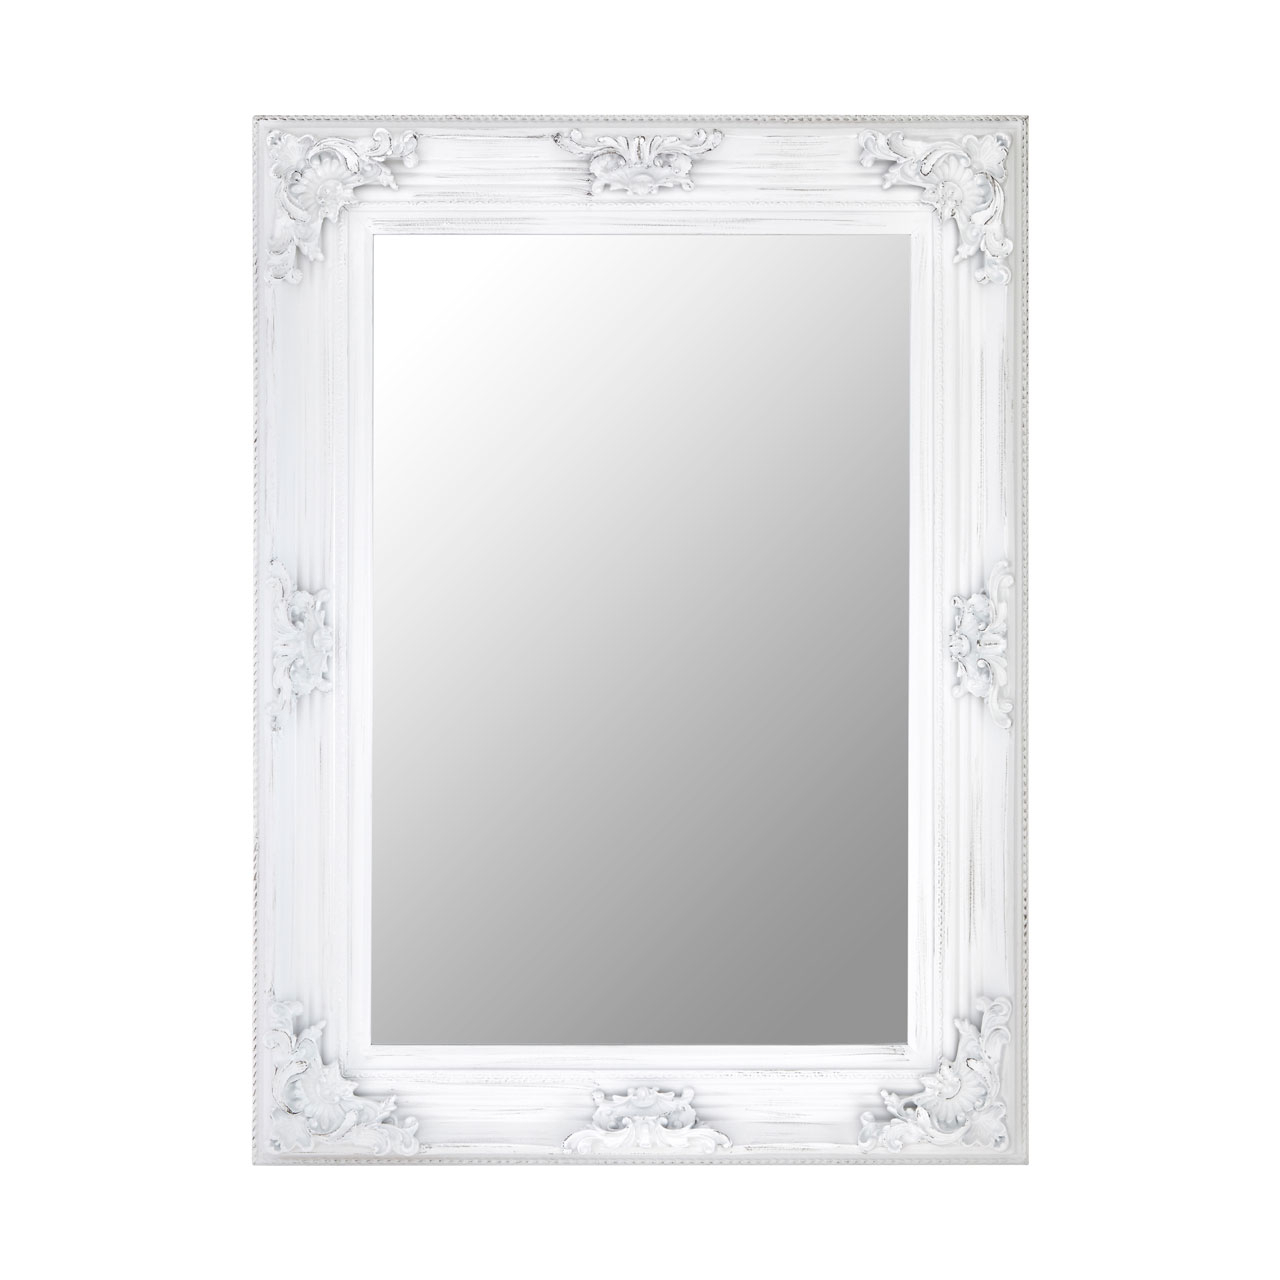 Cantata Antique White Wall Mirror Intended For Preferred Antique White Wall Mirrors (Gallery 8 of 20)